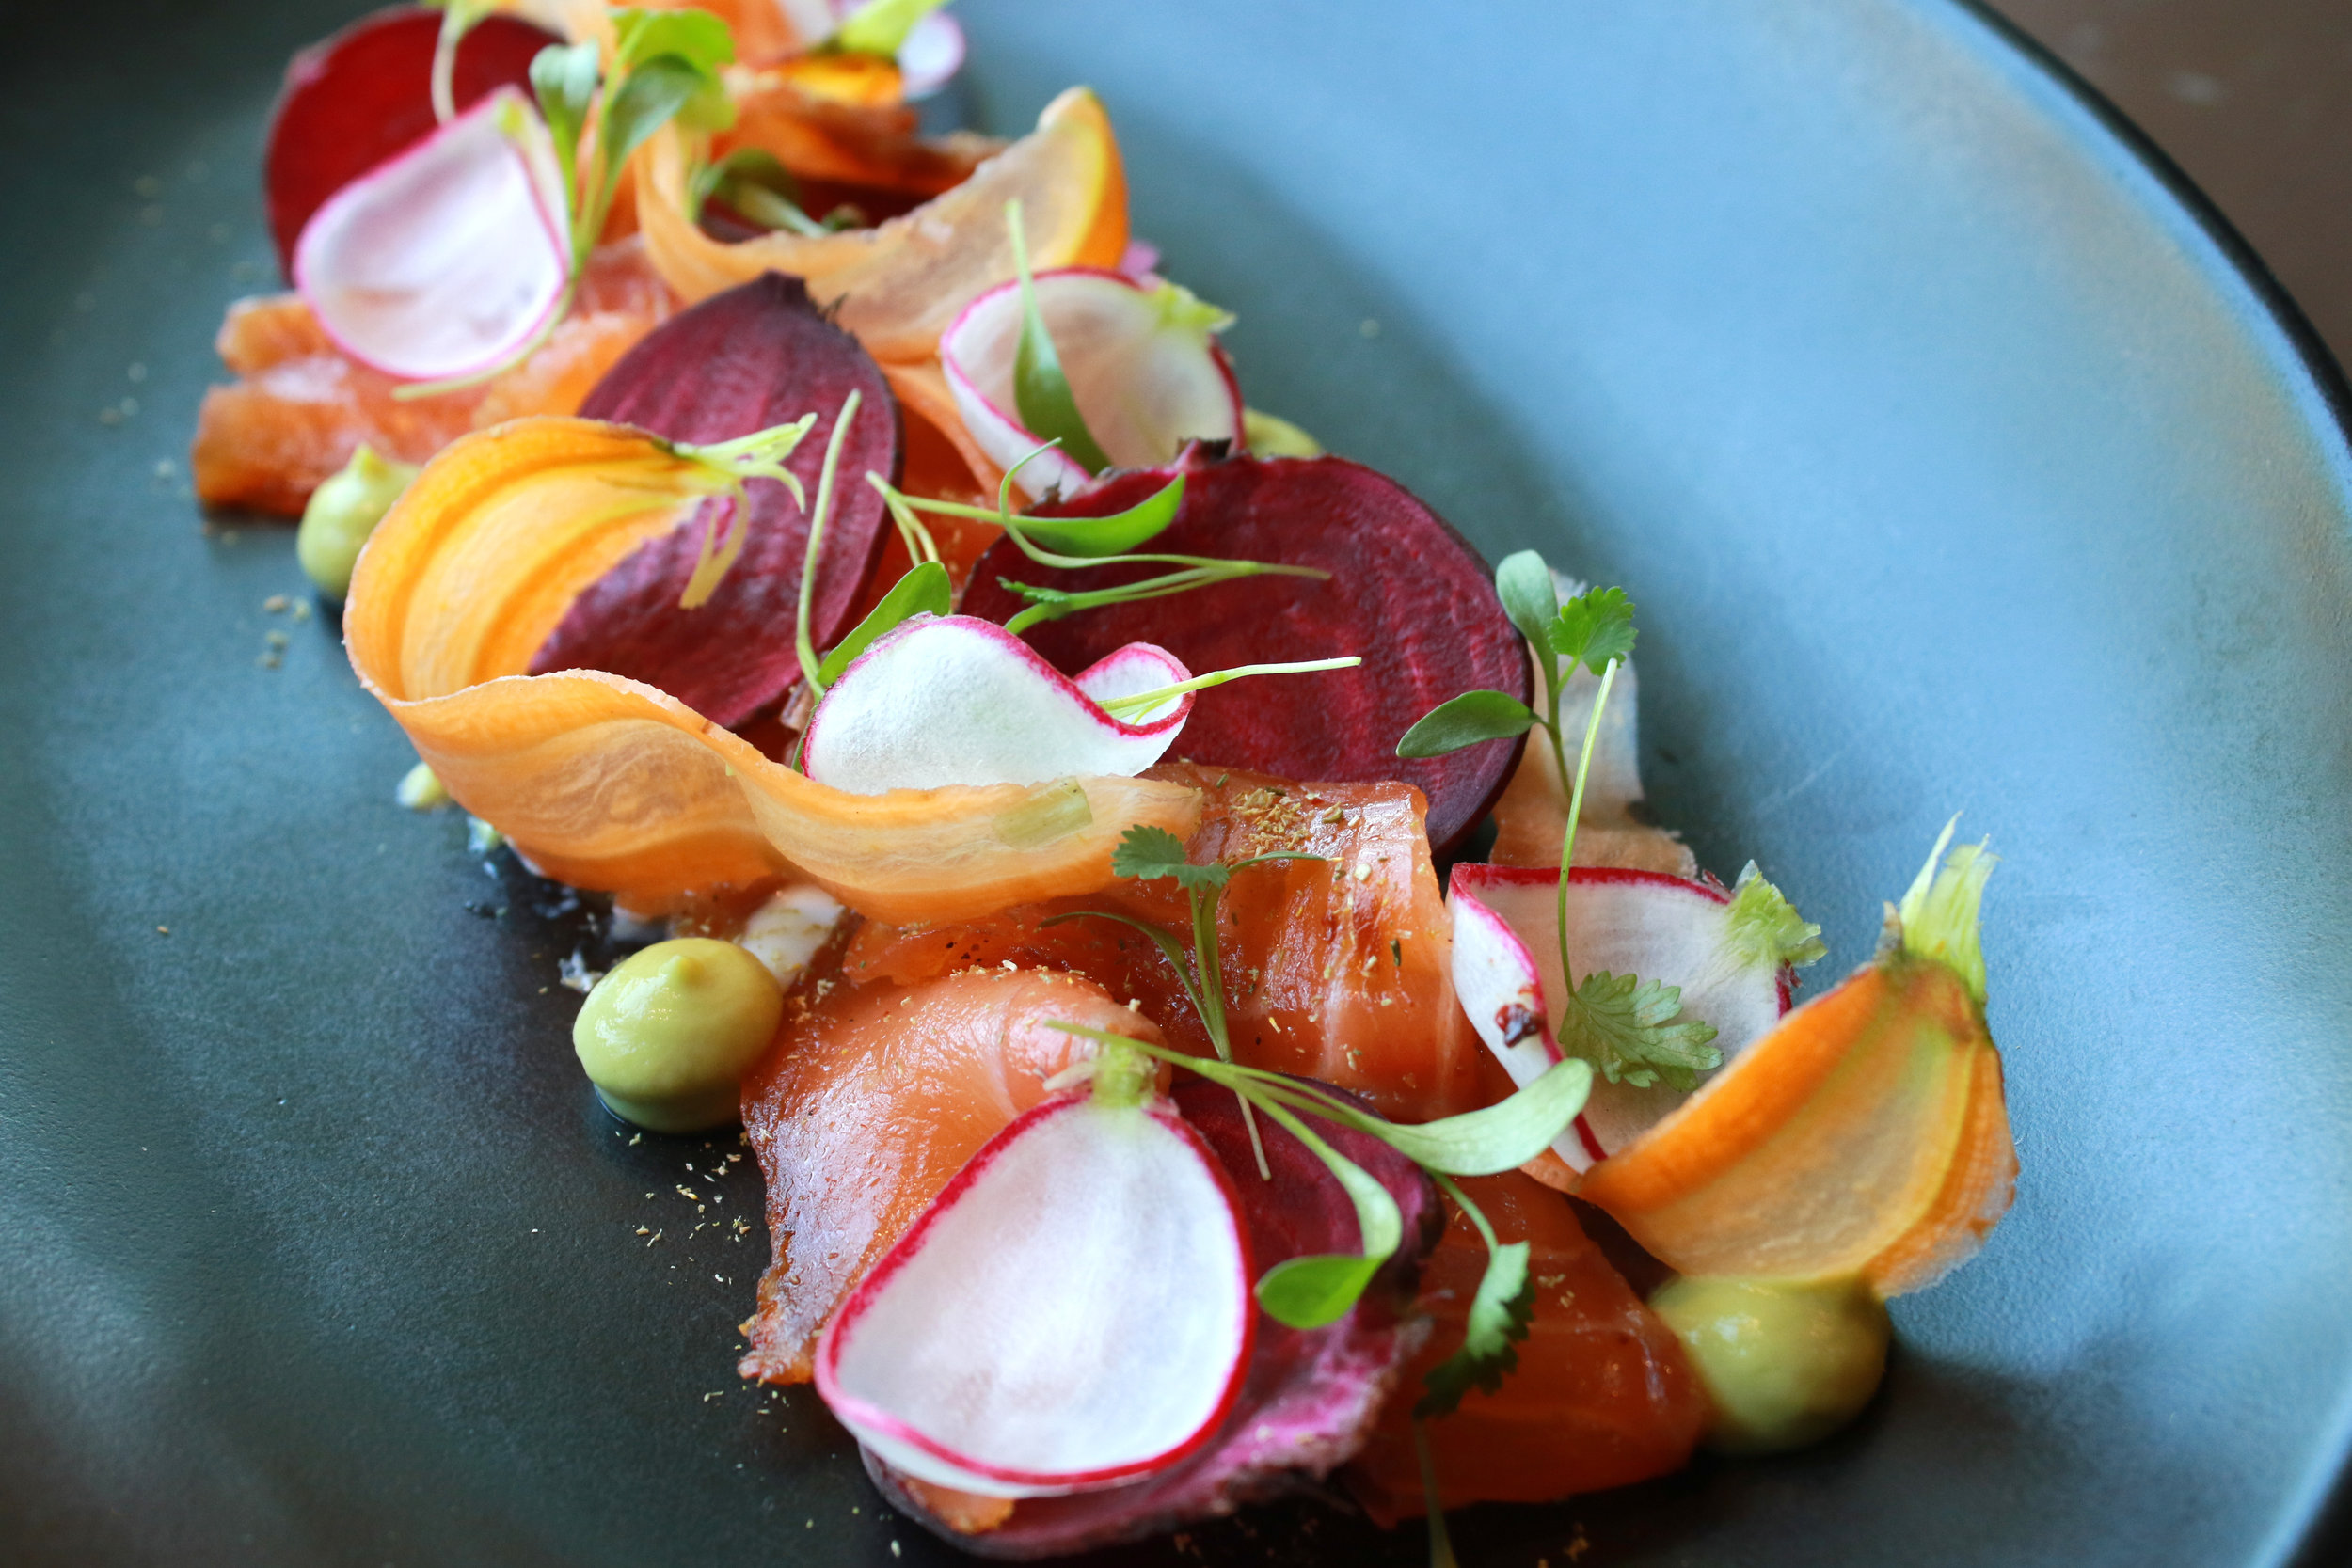 Cured Salmon with morita chile, carrot, radish, beet, and avocado purée.